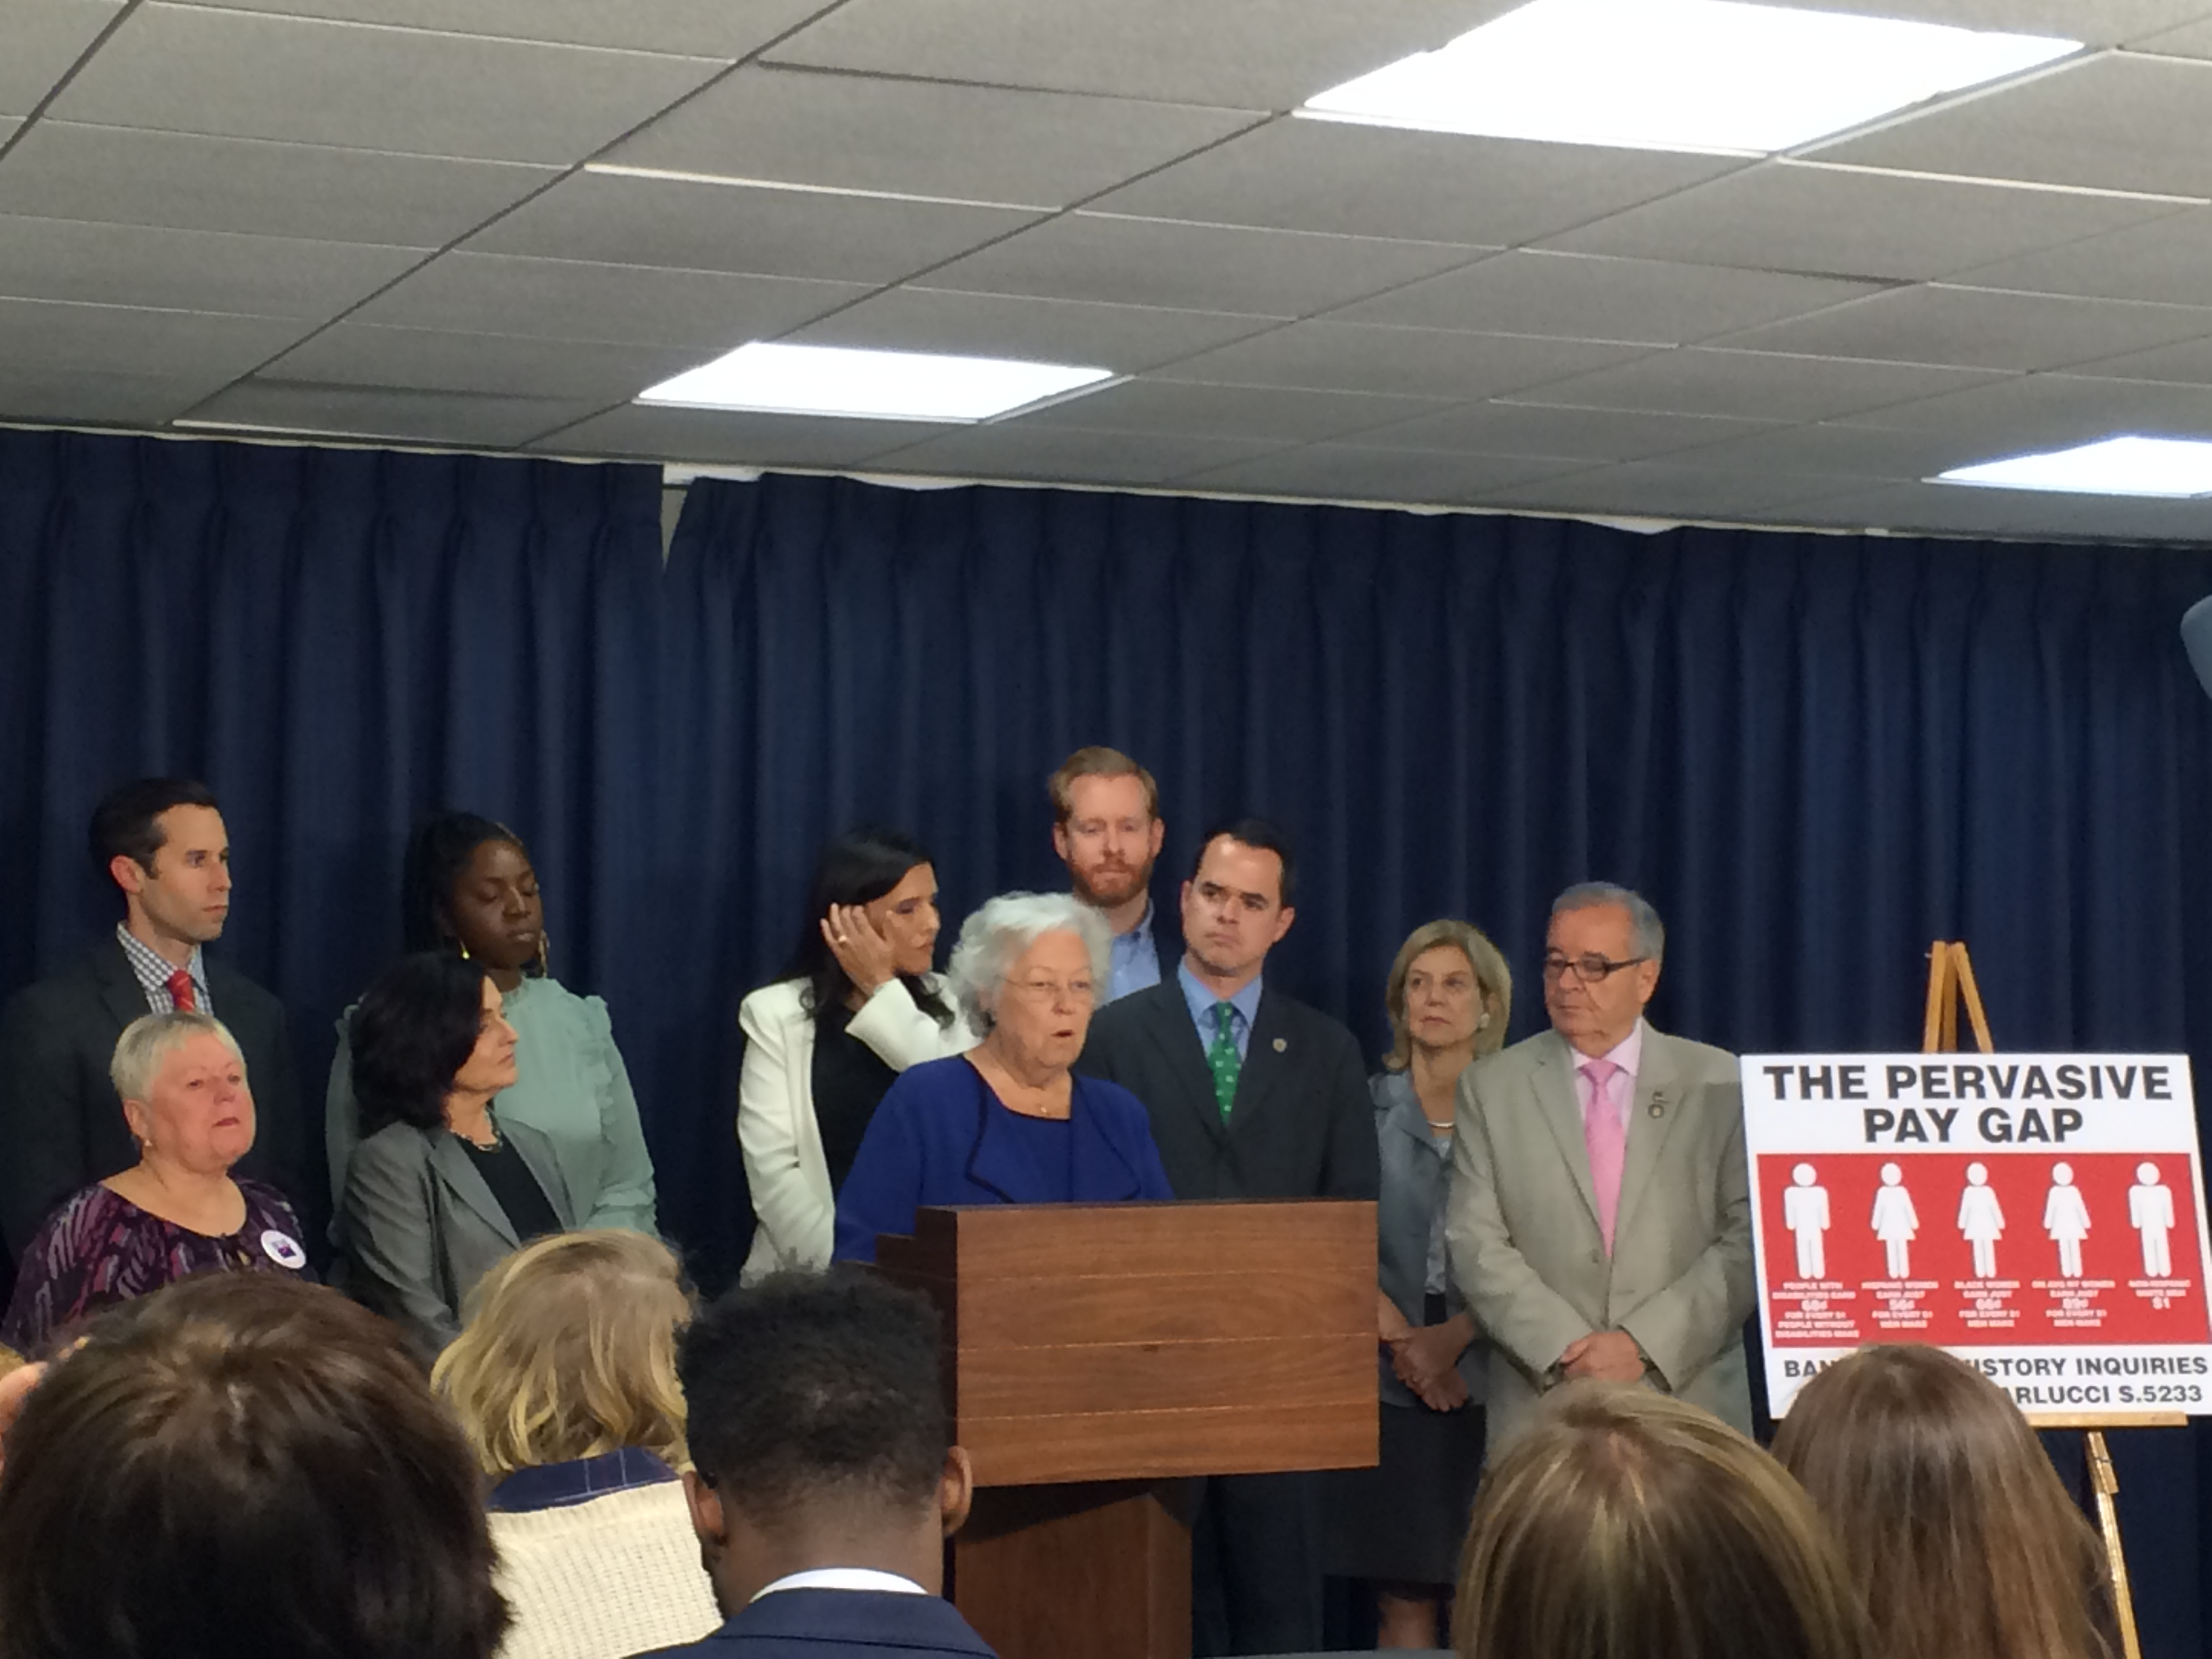 At a press conference, Sandy spoke to promote her bill to ban the question of salary history.<br /><br />&nbsp;